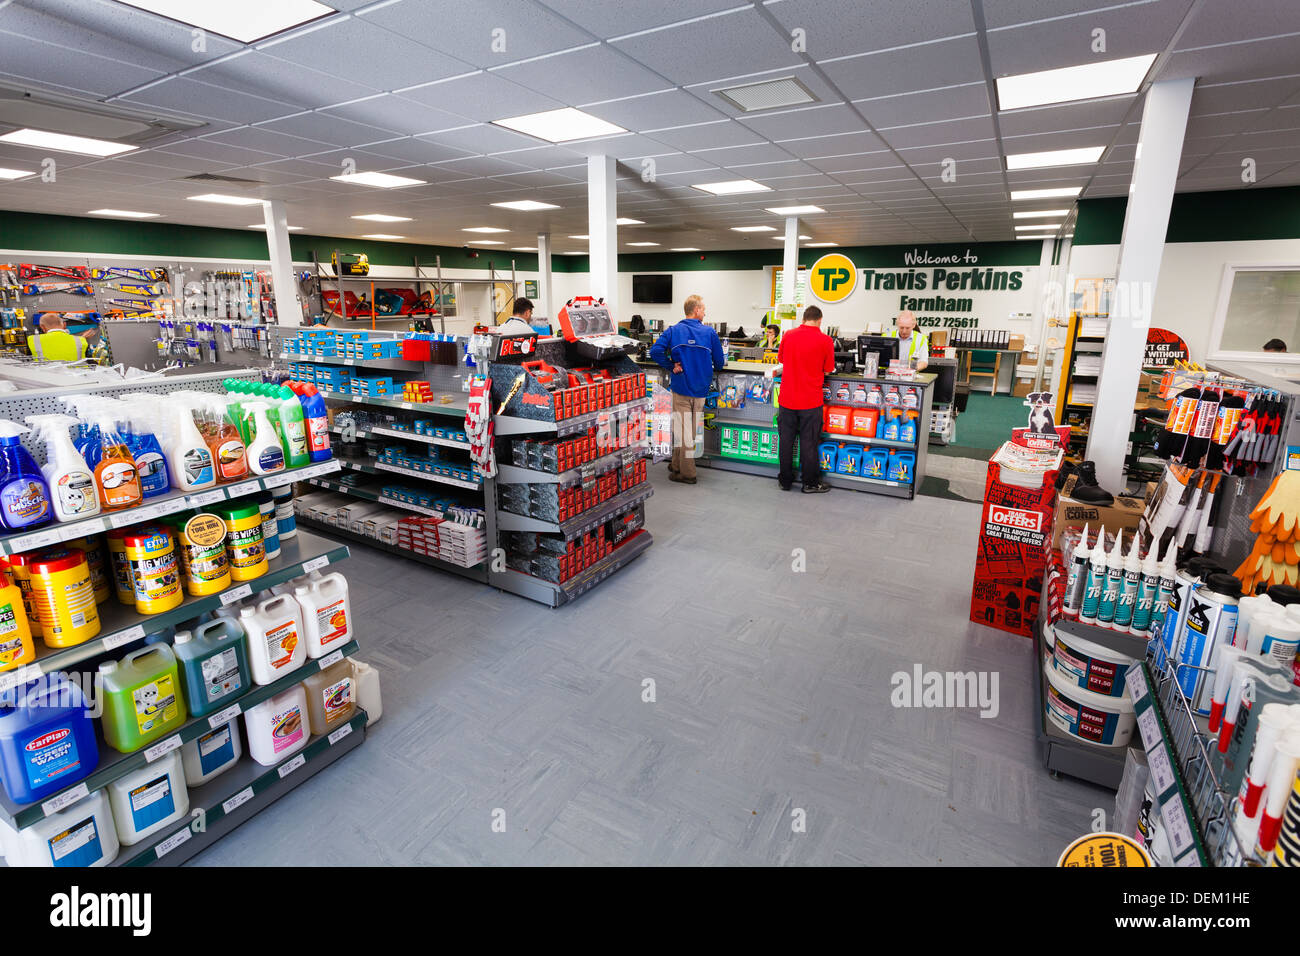 interior of Travis Perkins Builders Merchants shop - Stock Image